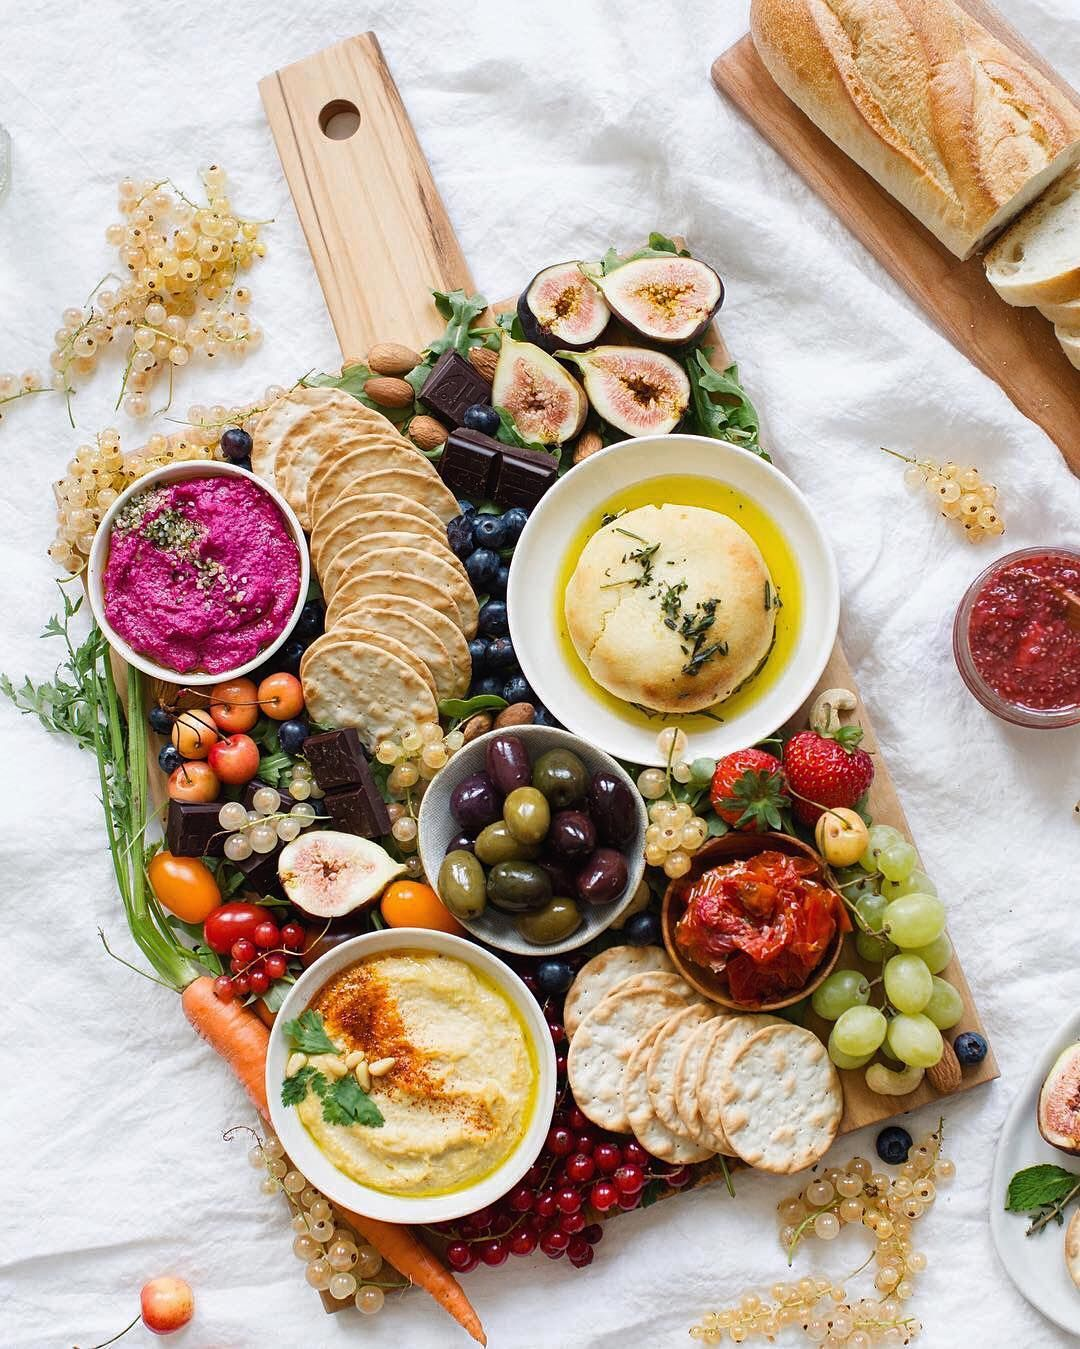 Vegan Wedding Food: Humpday Platter Goals! We Fell In Love At First Sight With